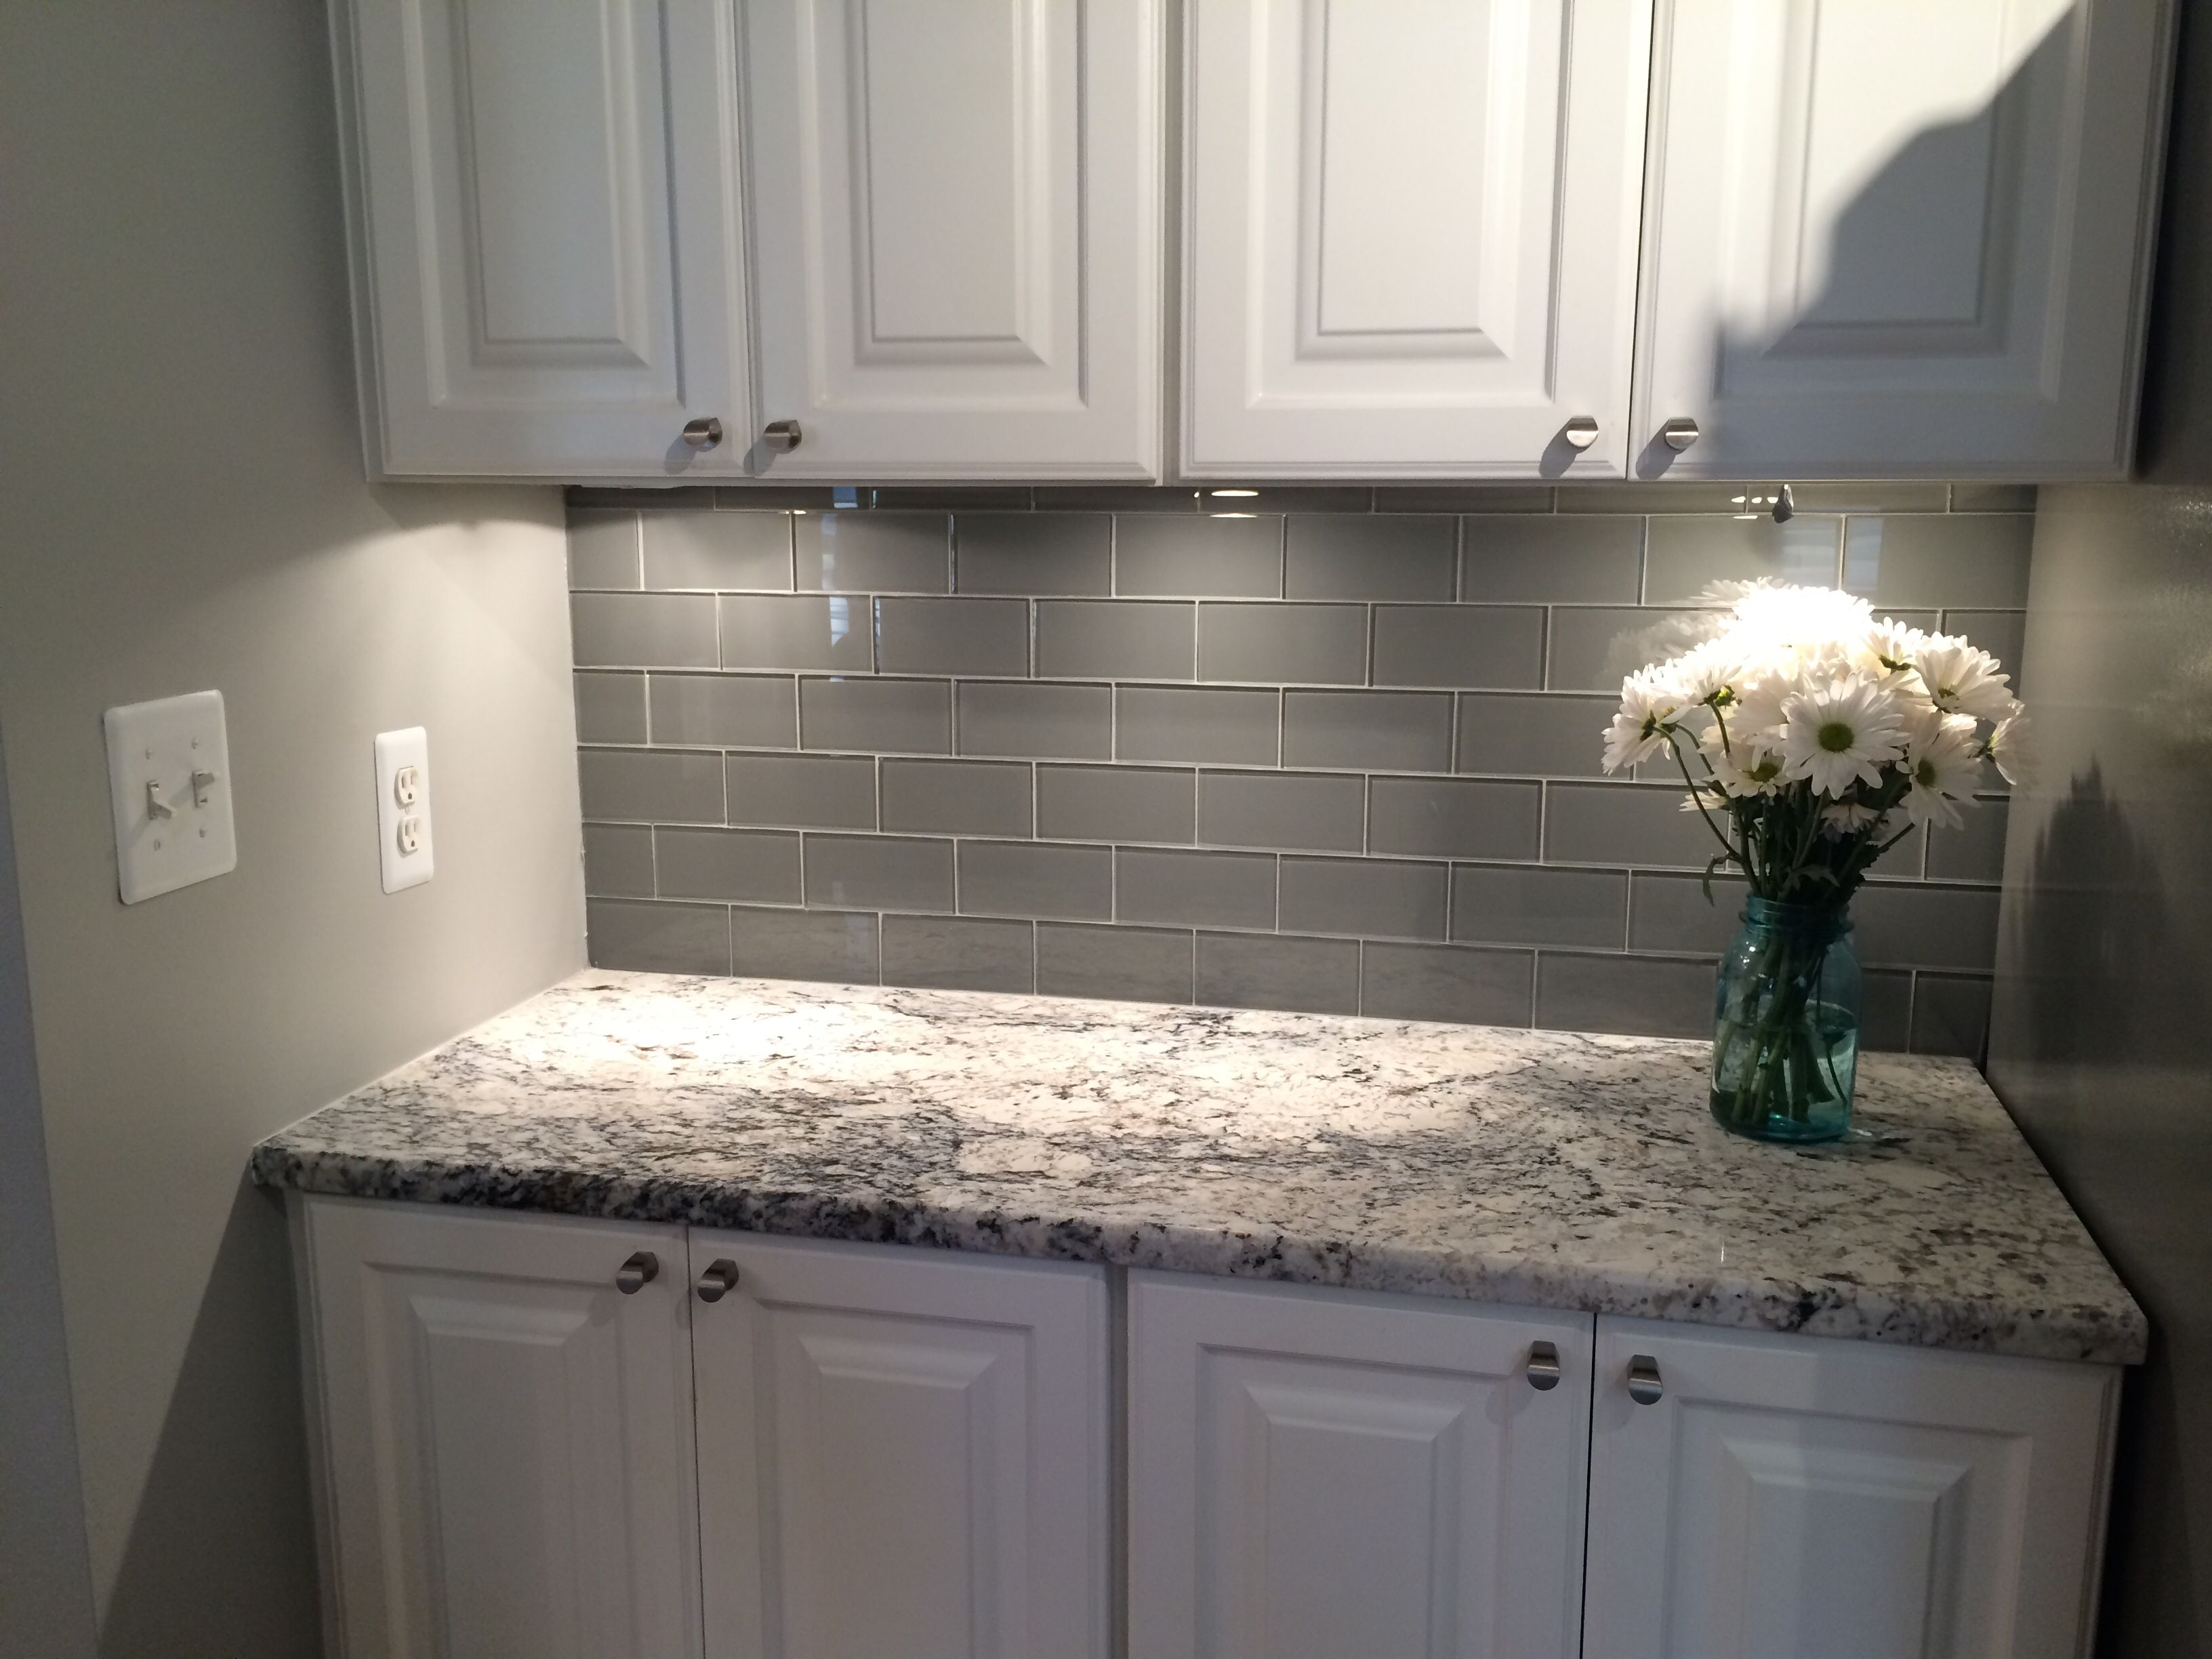 Grey glass subway tile backsplash and white cabinet for small grey glass subway tile backsplash and white cabinet for small space dailygadgetfo Choice Image